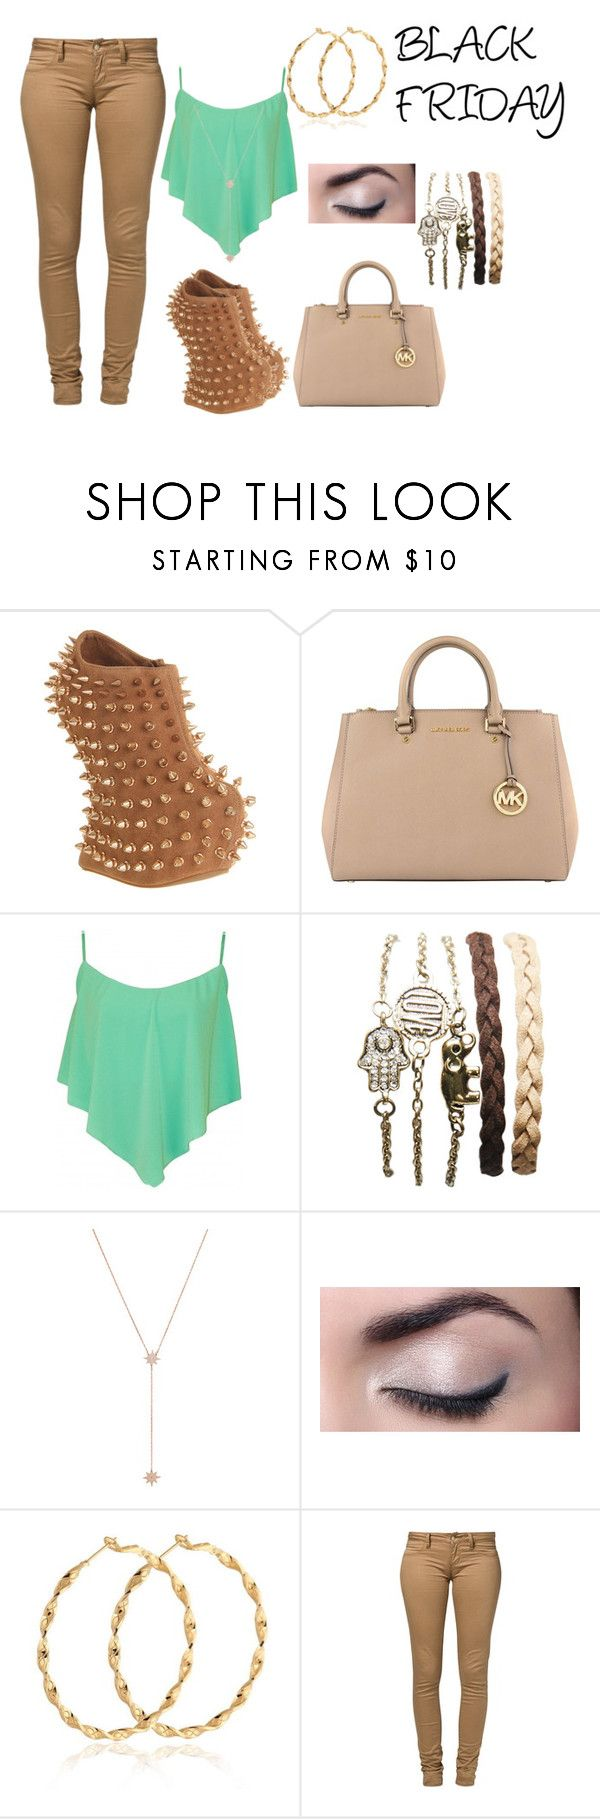 """Untitled #494"" by svhs2019 ❤ liked on Polyvore featuring Jeffrey Campbell, MICHAEL Michael Kors, Wet Seal, Jennifer Zeuner and Monkee Genes"